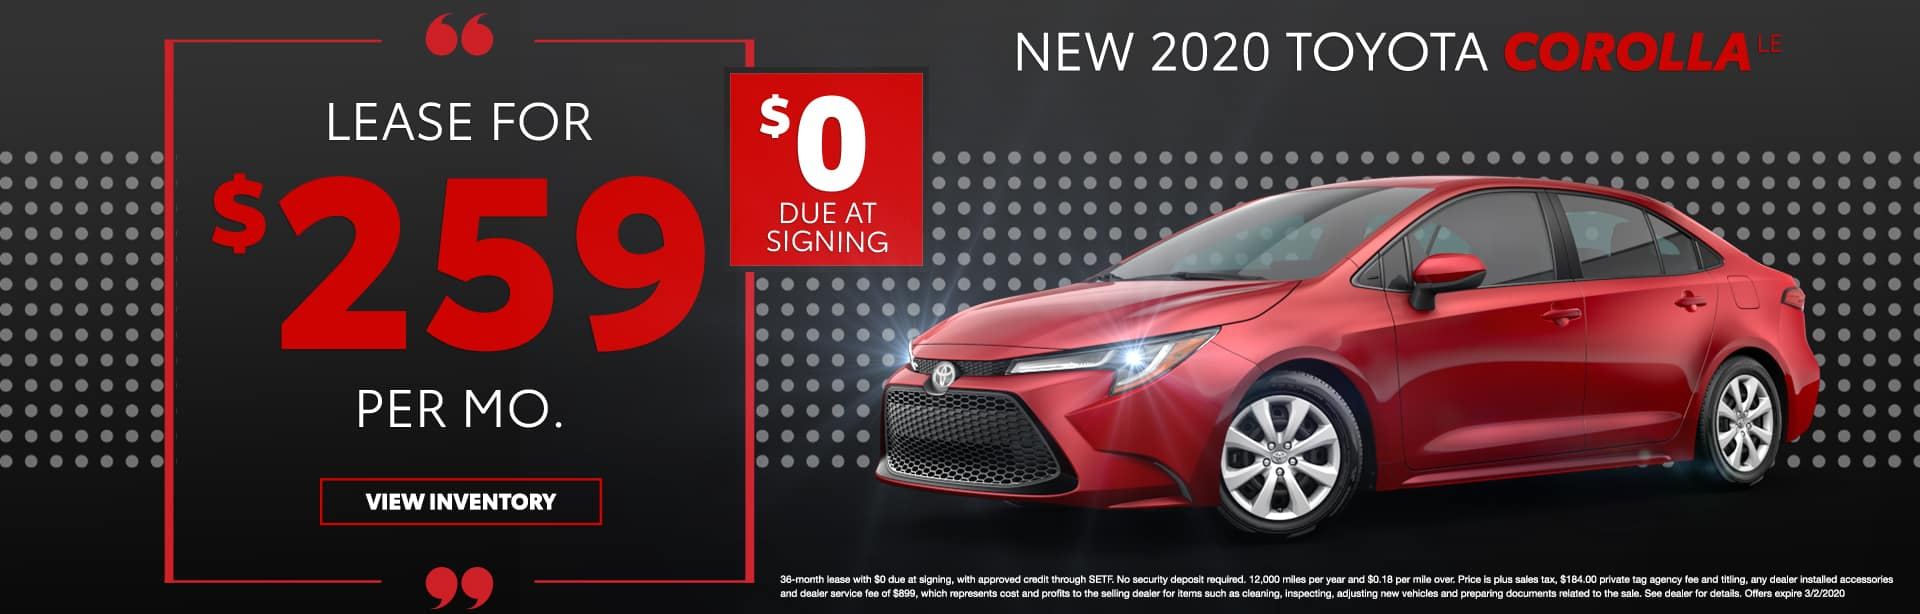 New 2020 Toyota Corolla LE   Lease For $259 Per Mo   $0 Due At Signing